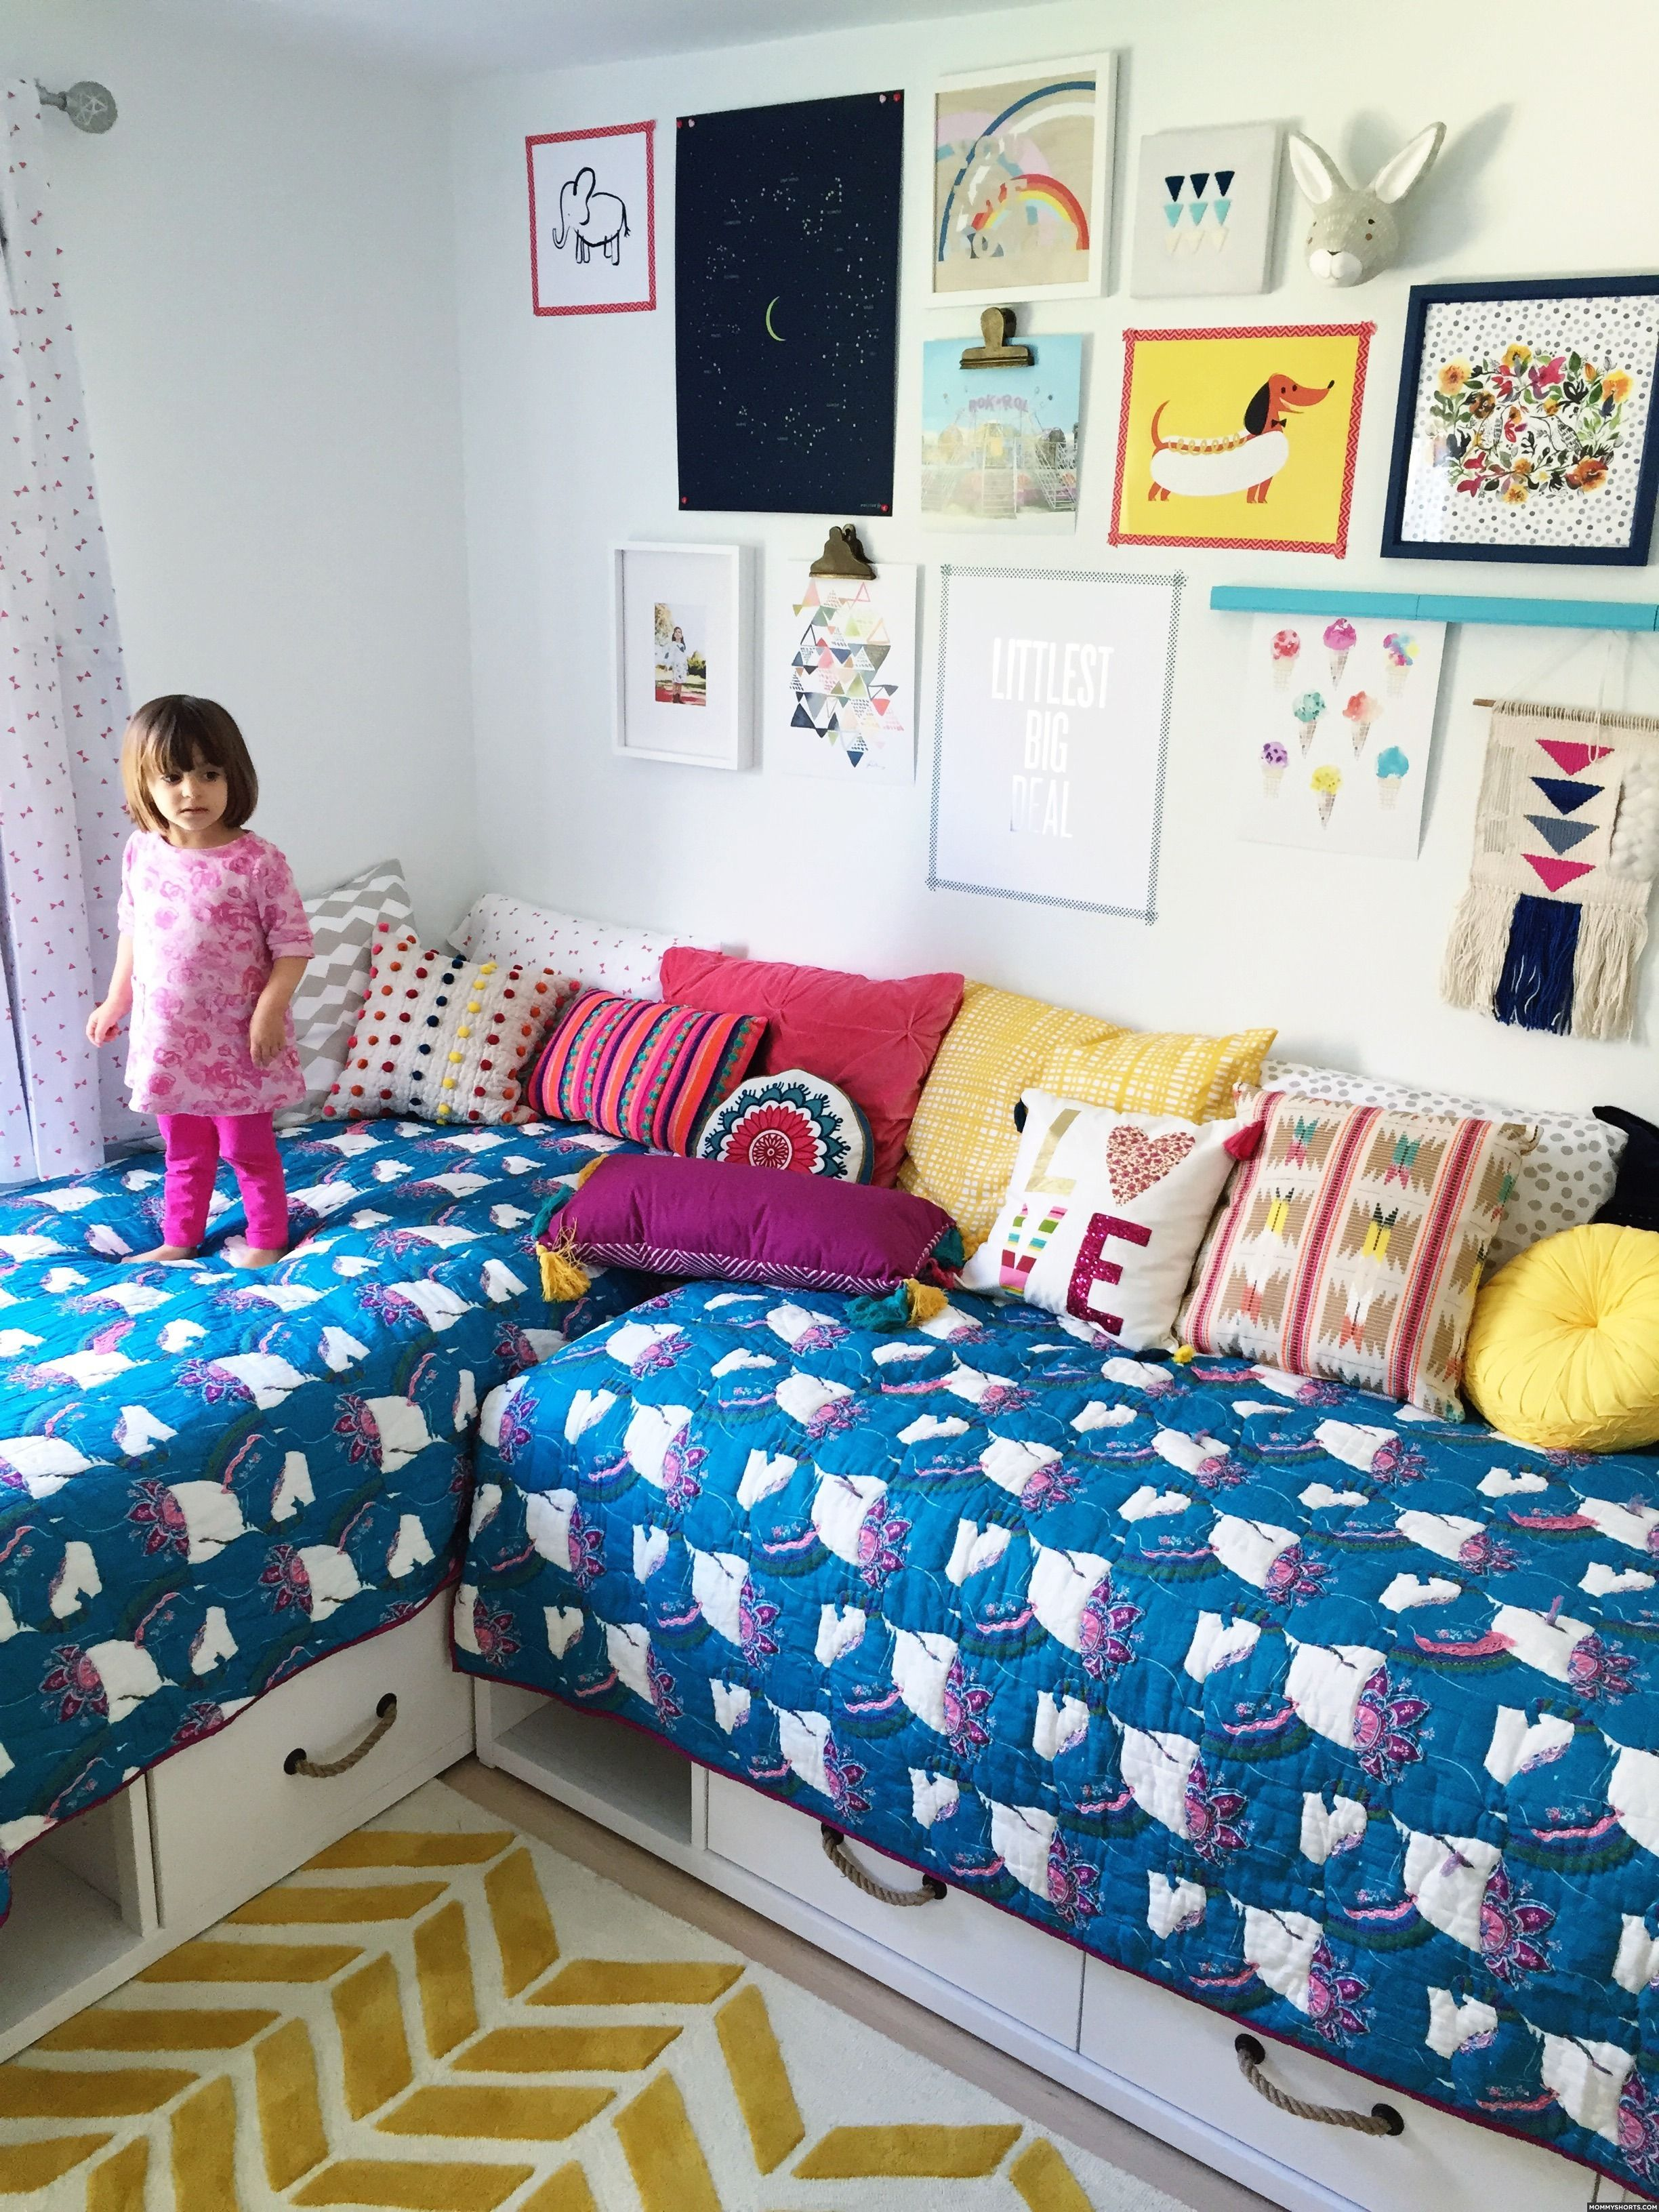 Kids bedrooms for two - A Modern Boho Bedroom For Mazzy And Harlow